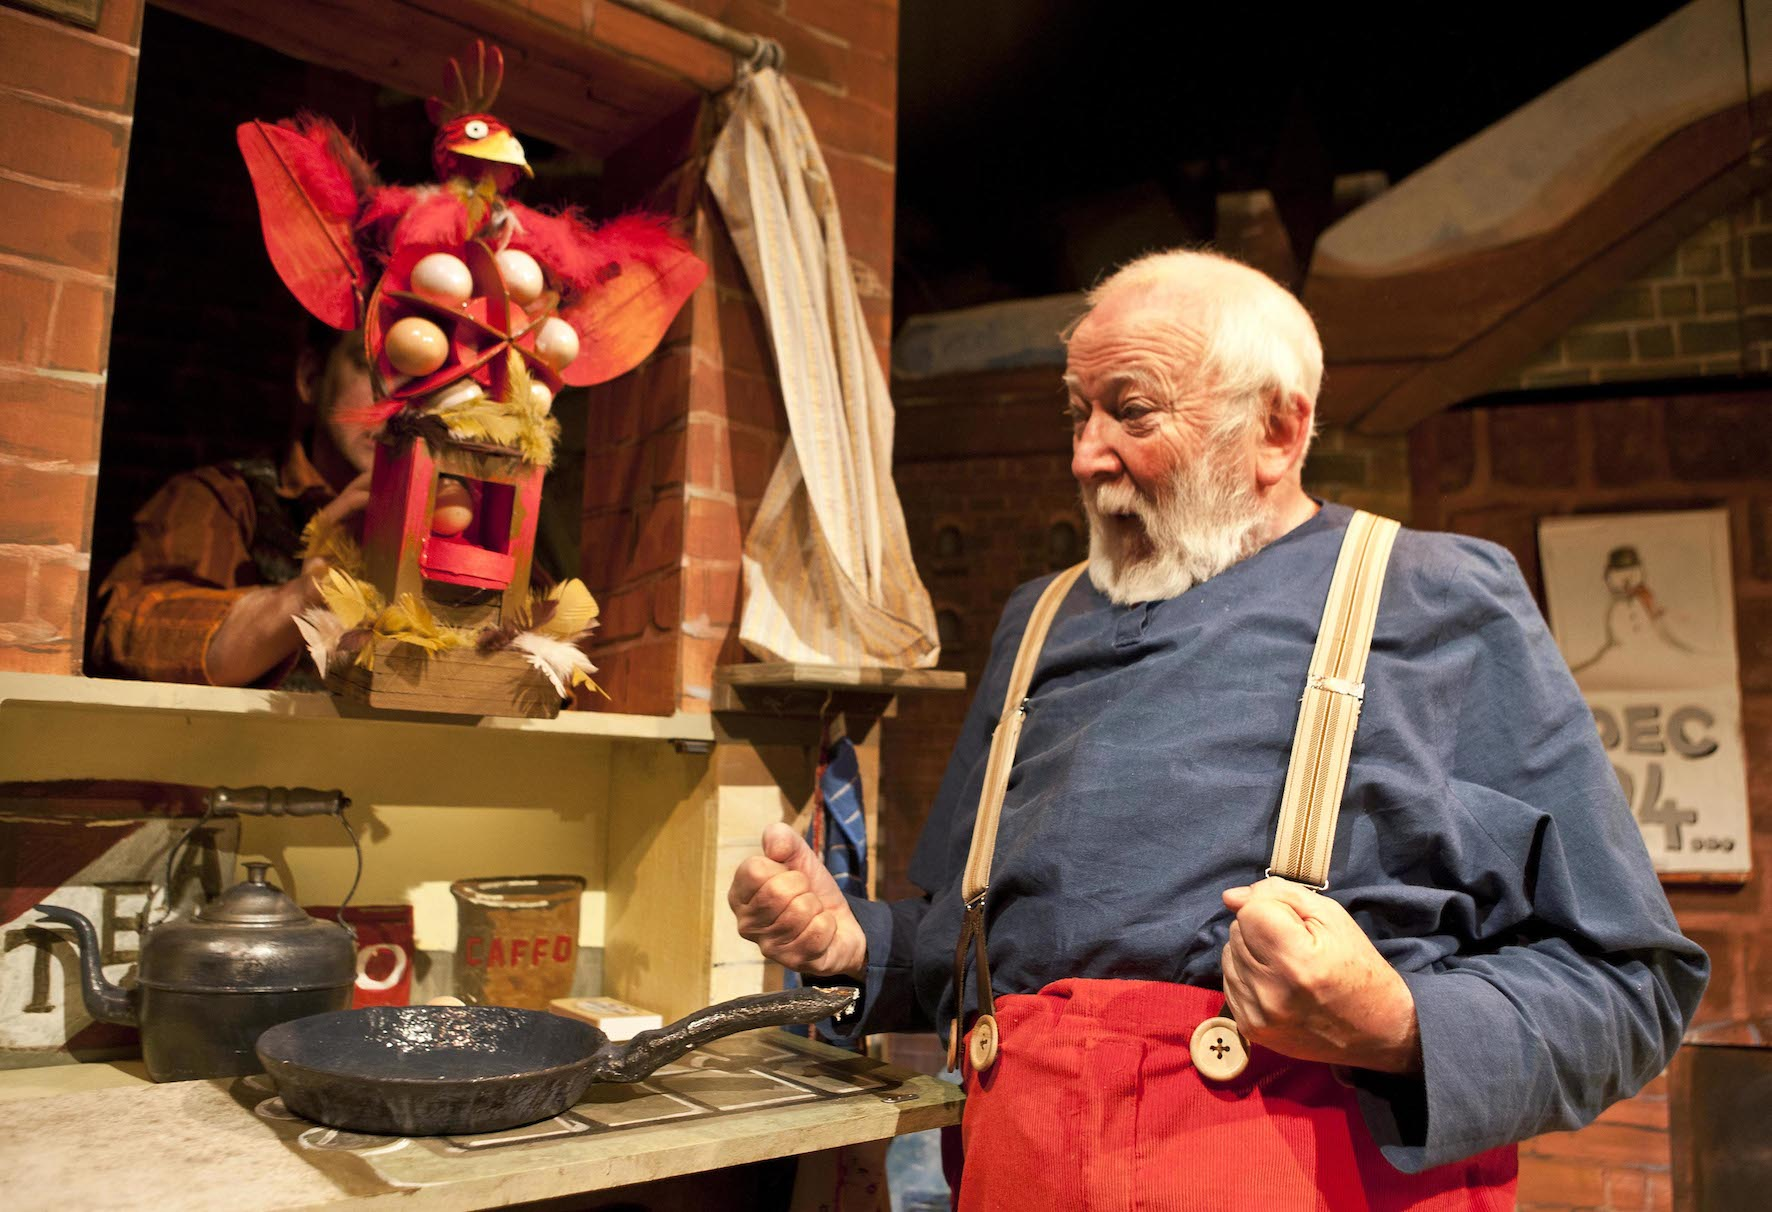 Raymond Briggs Father Christmas cooking his eggs for breakfast using the chicken. the theatre show i